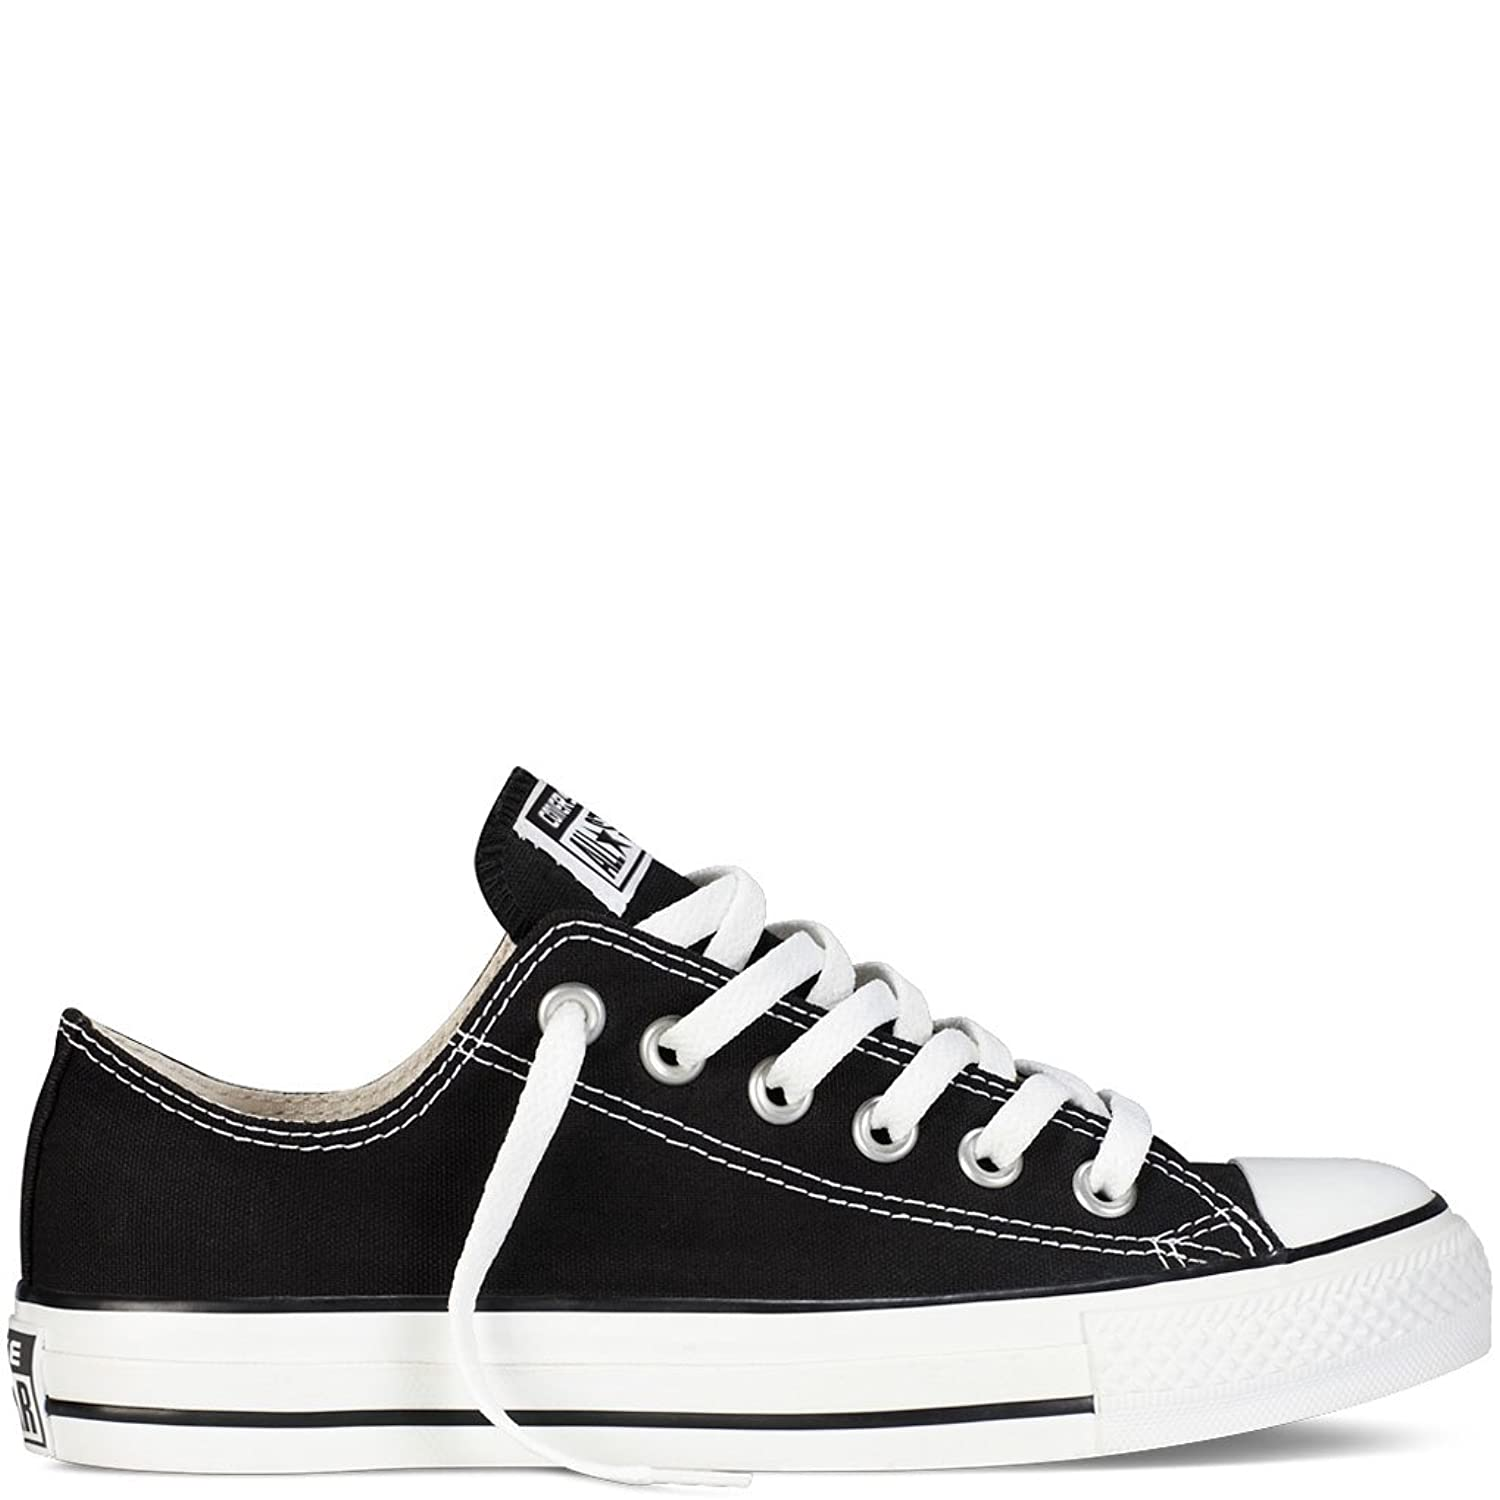 amazoncom converse unisex chuck taylor all star low top sneaker fashion sneakers - All Converse Colors